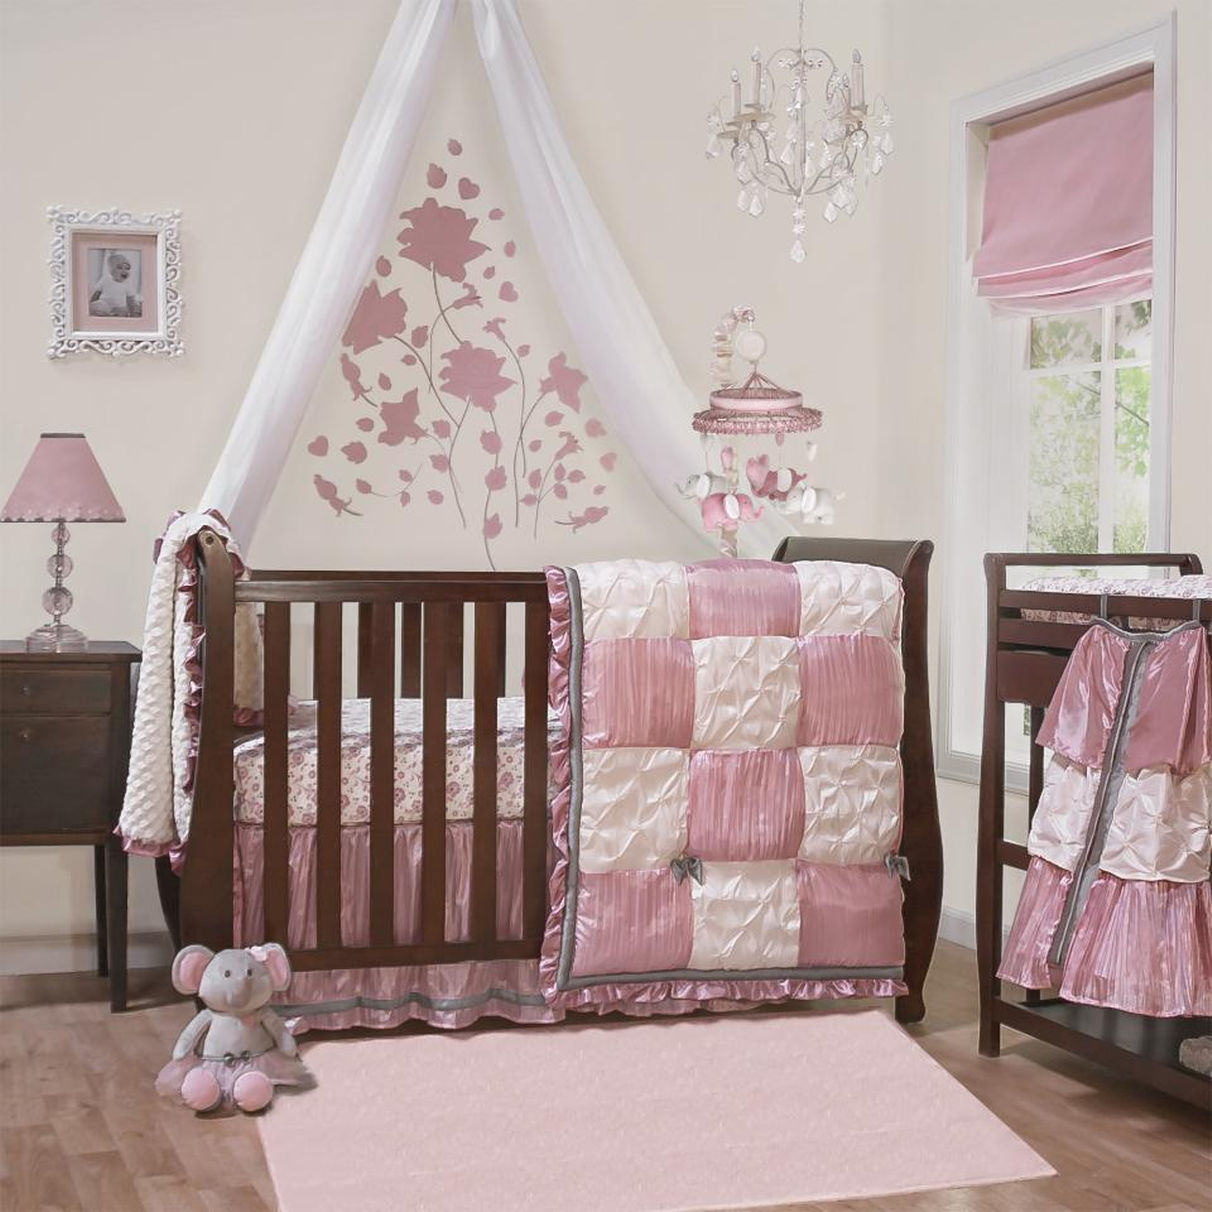 Image of: Elephant Crib Bedding Sets For Girls